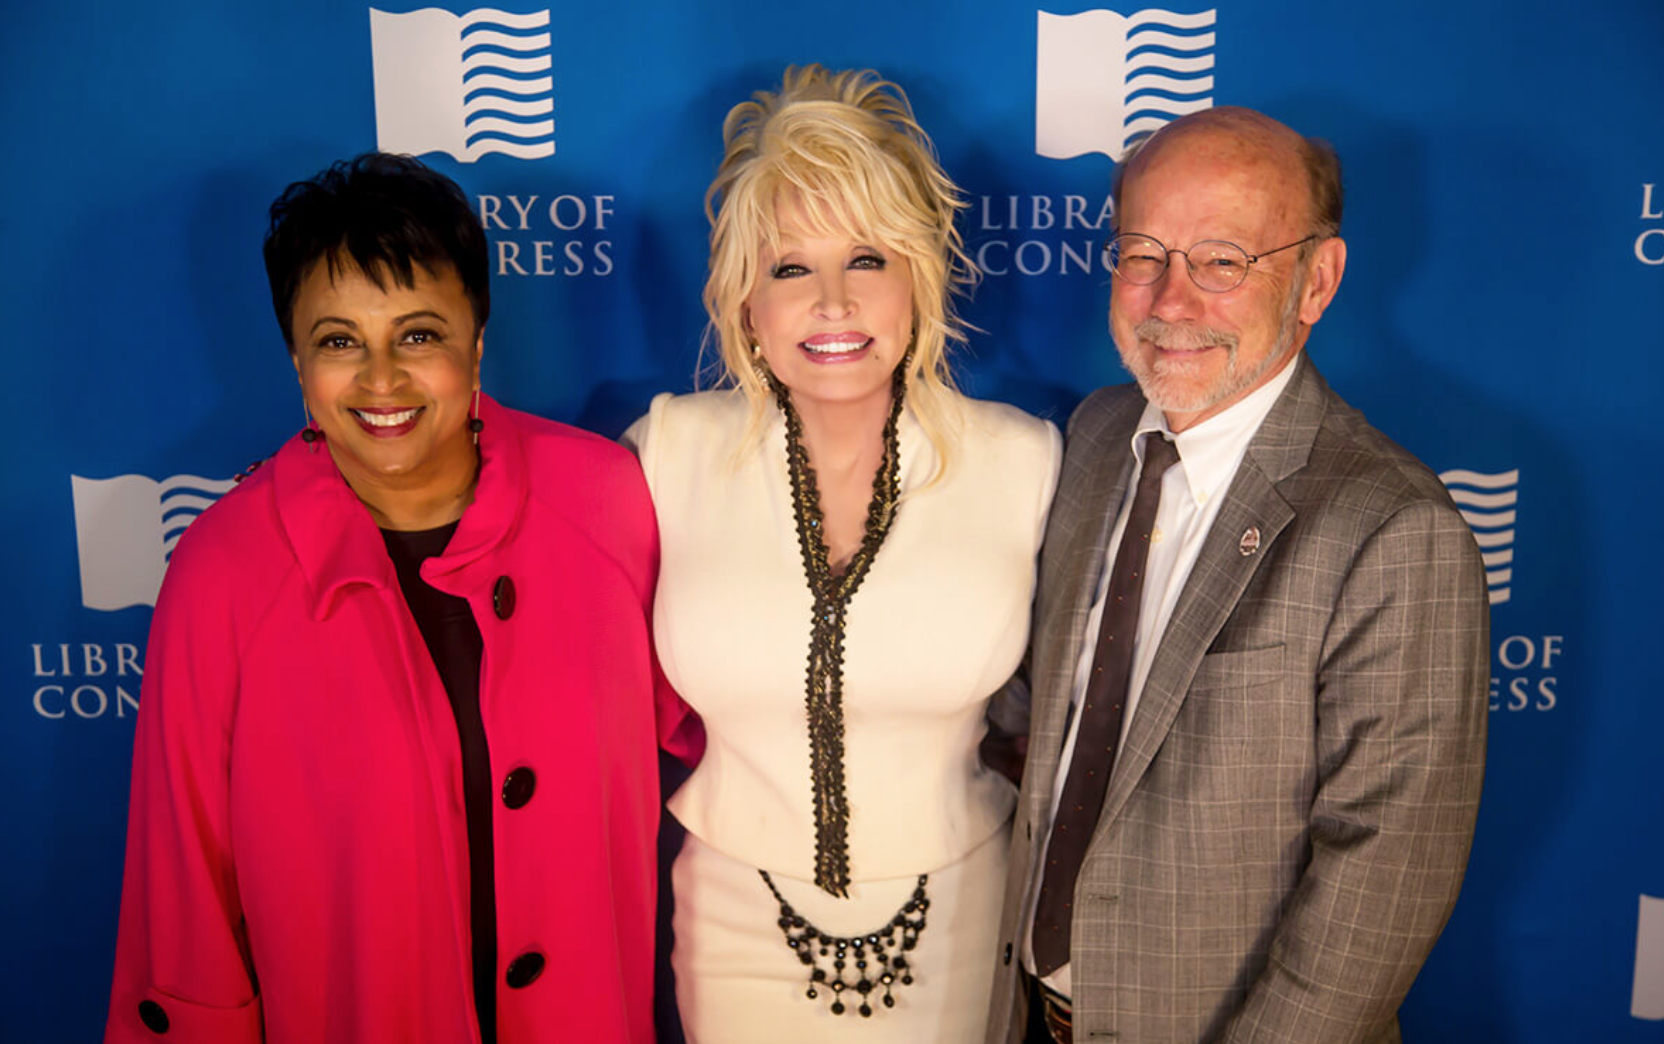 Librarian of Congress, Carla Hayden; Dolly Parton; Dollywood Foundation Executive Director Dave Dobson dedicating the 100 Millionth Book at the Library of Congress in 2018. Credit: DollyParton.com